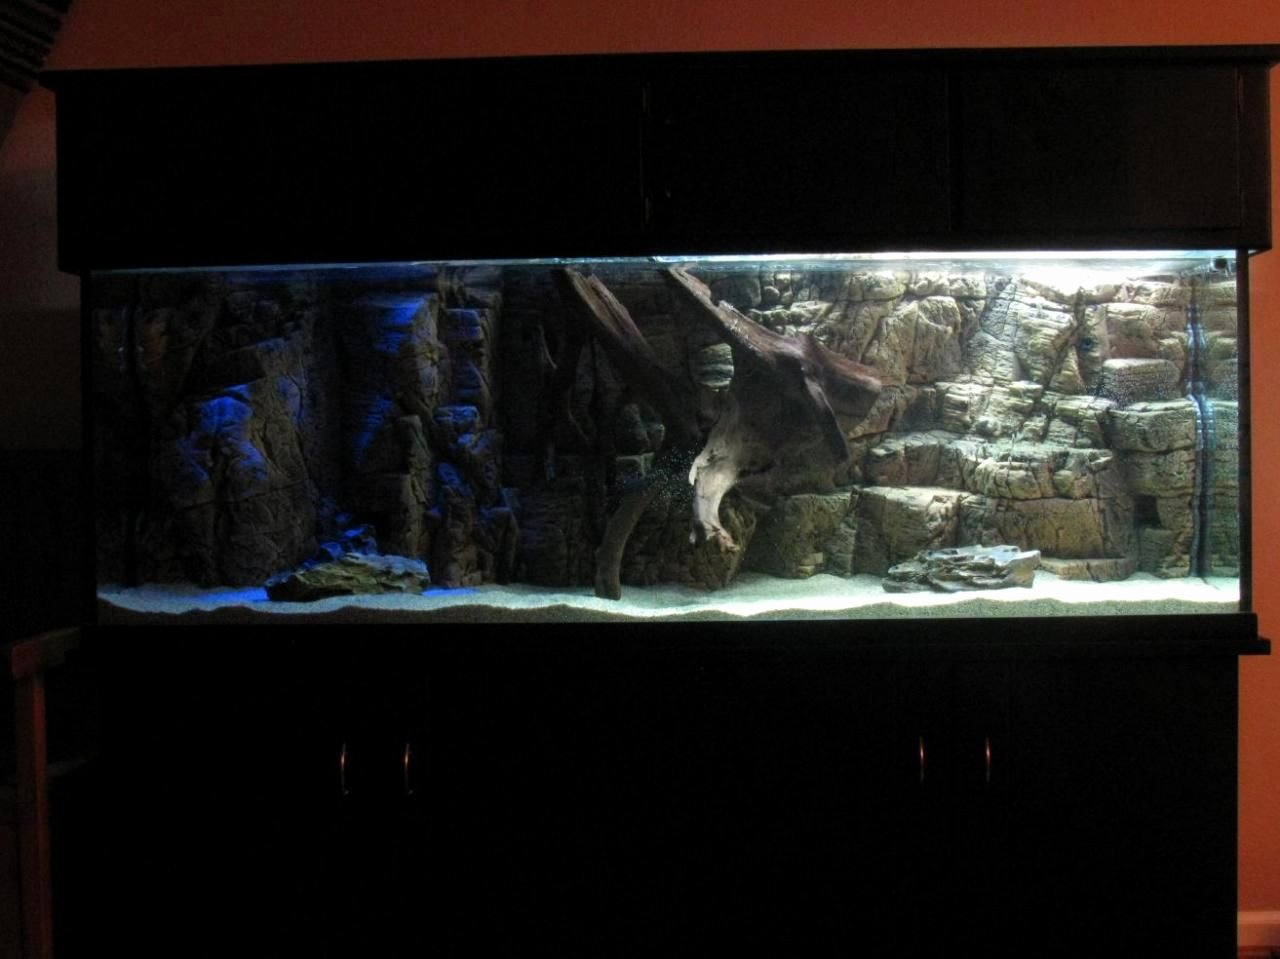 3d Backgrounds Fish Tank Awesome 3d Background Discus Aquarium Fish Tank Ideas